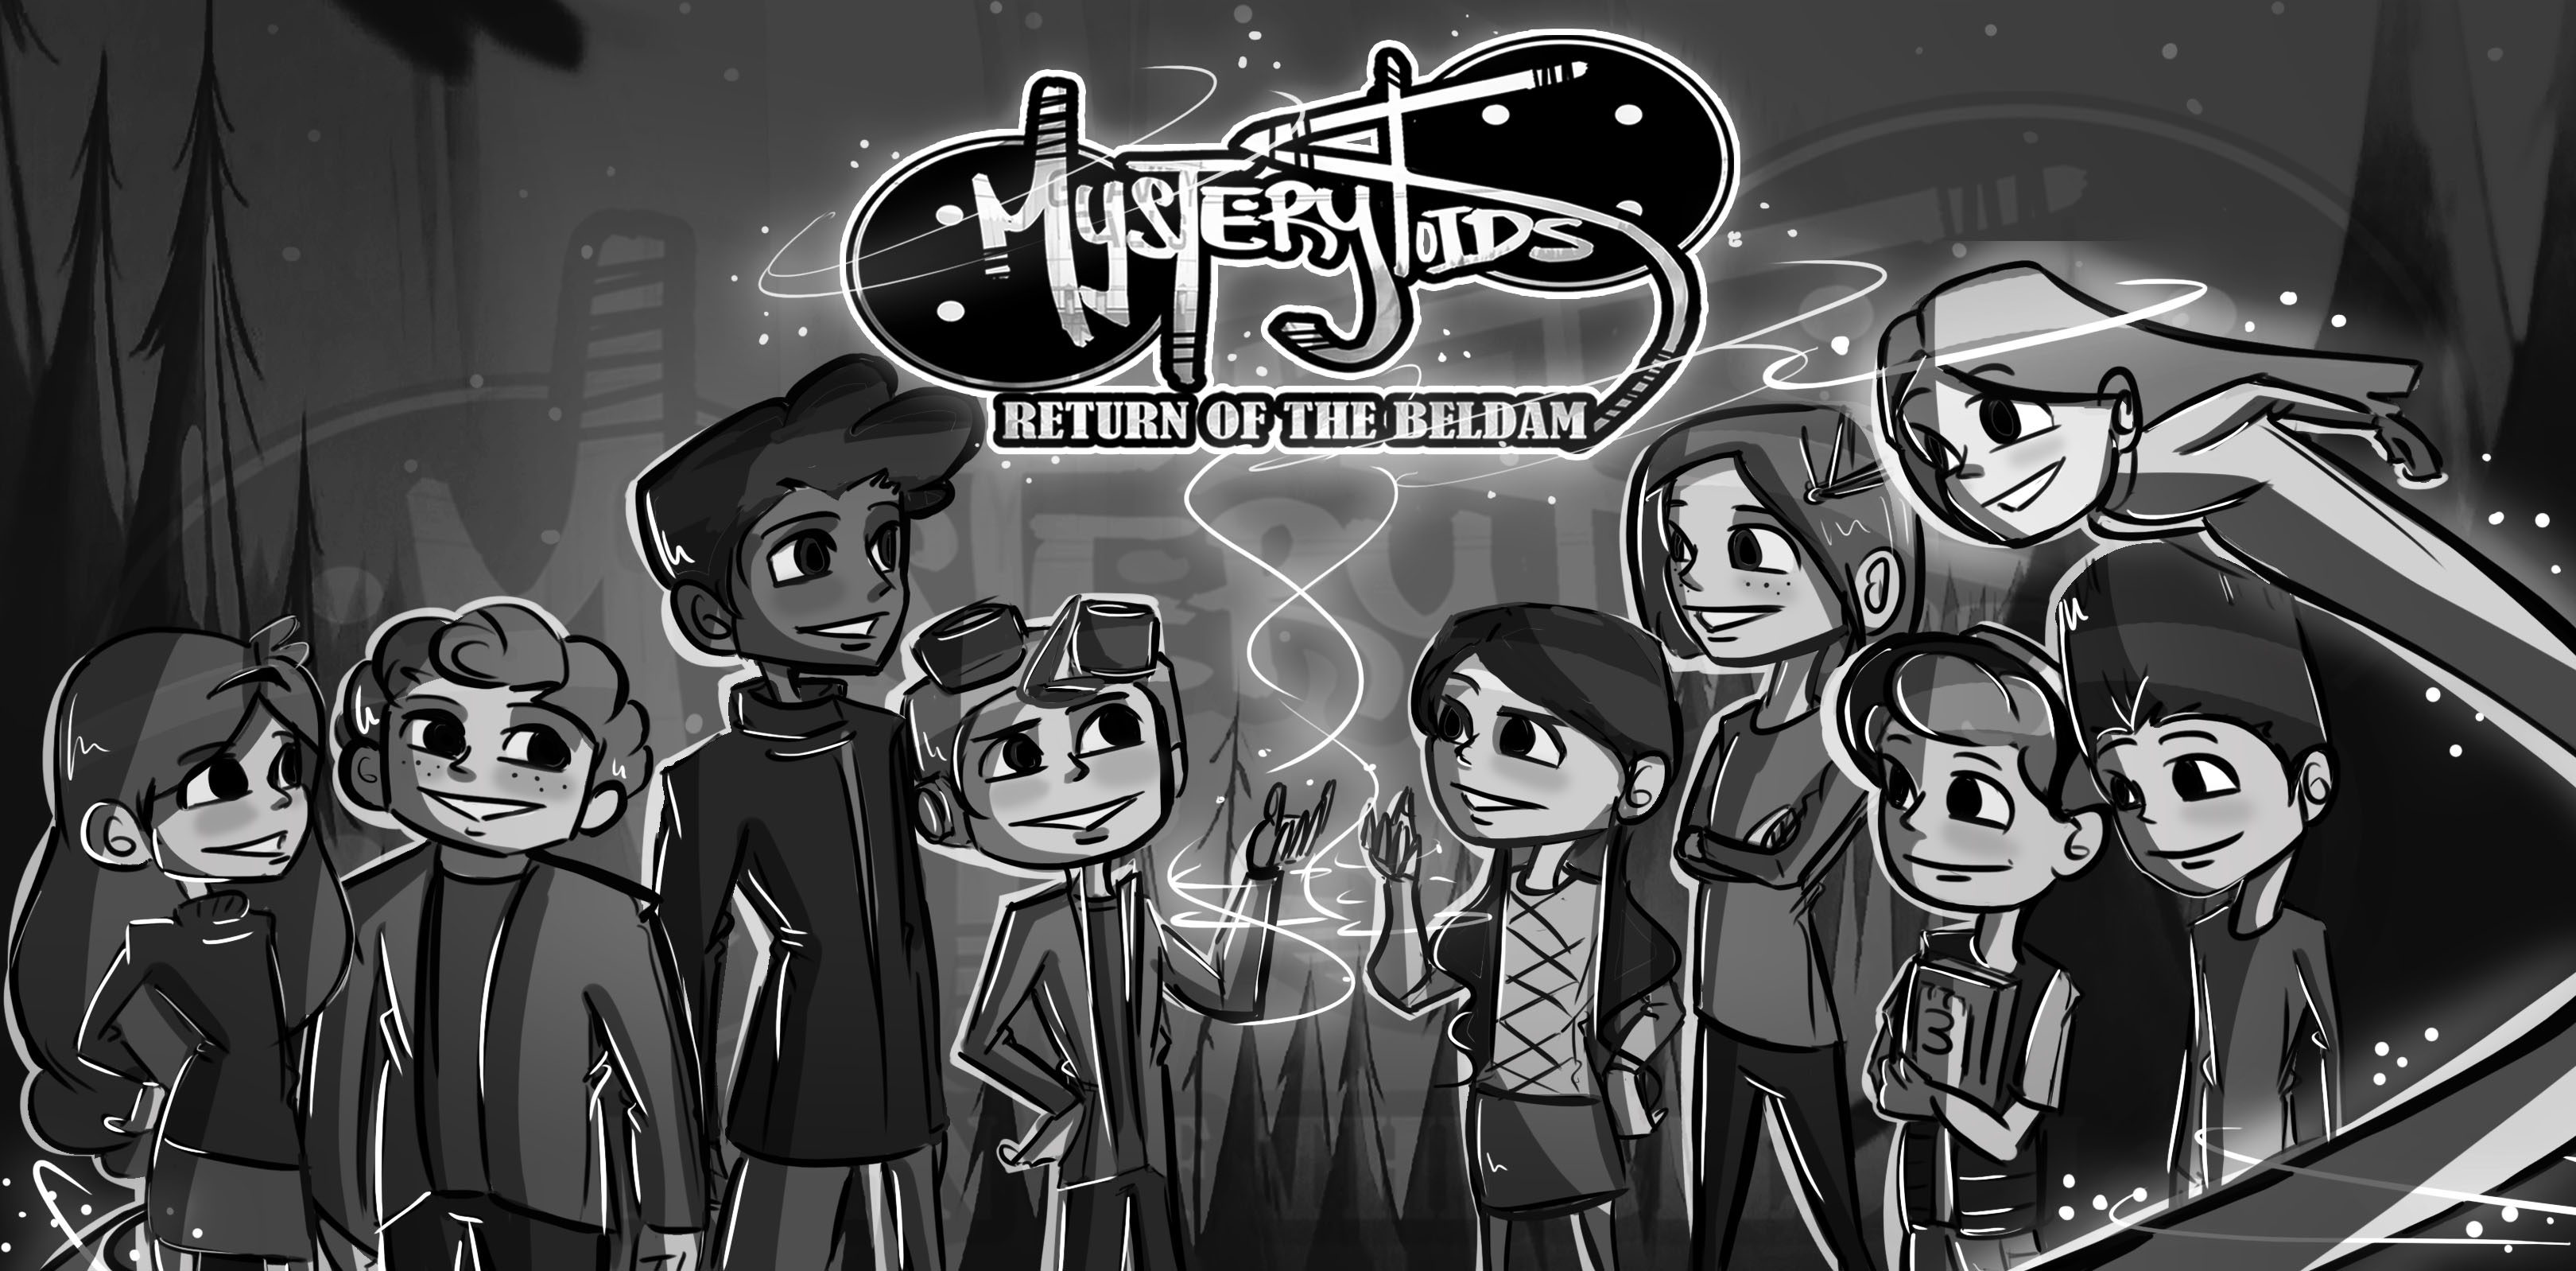 MYSTERY KIDS - RETURN OF THE BELDAM